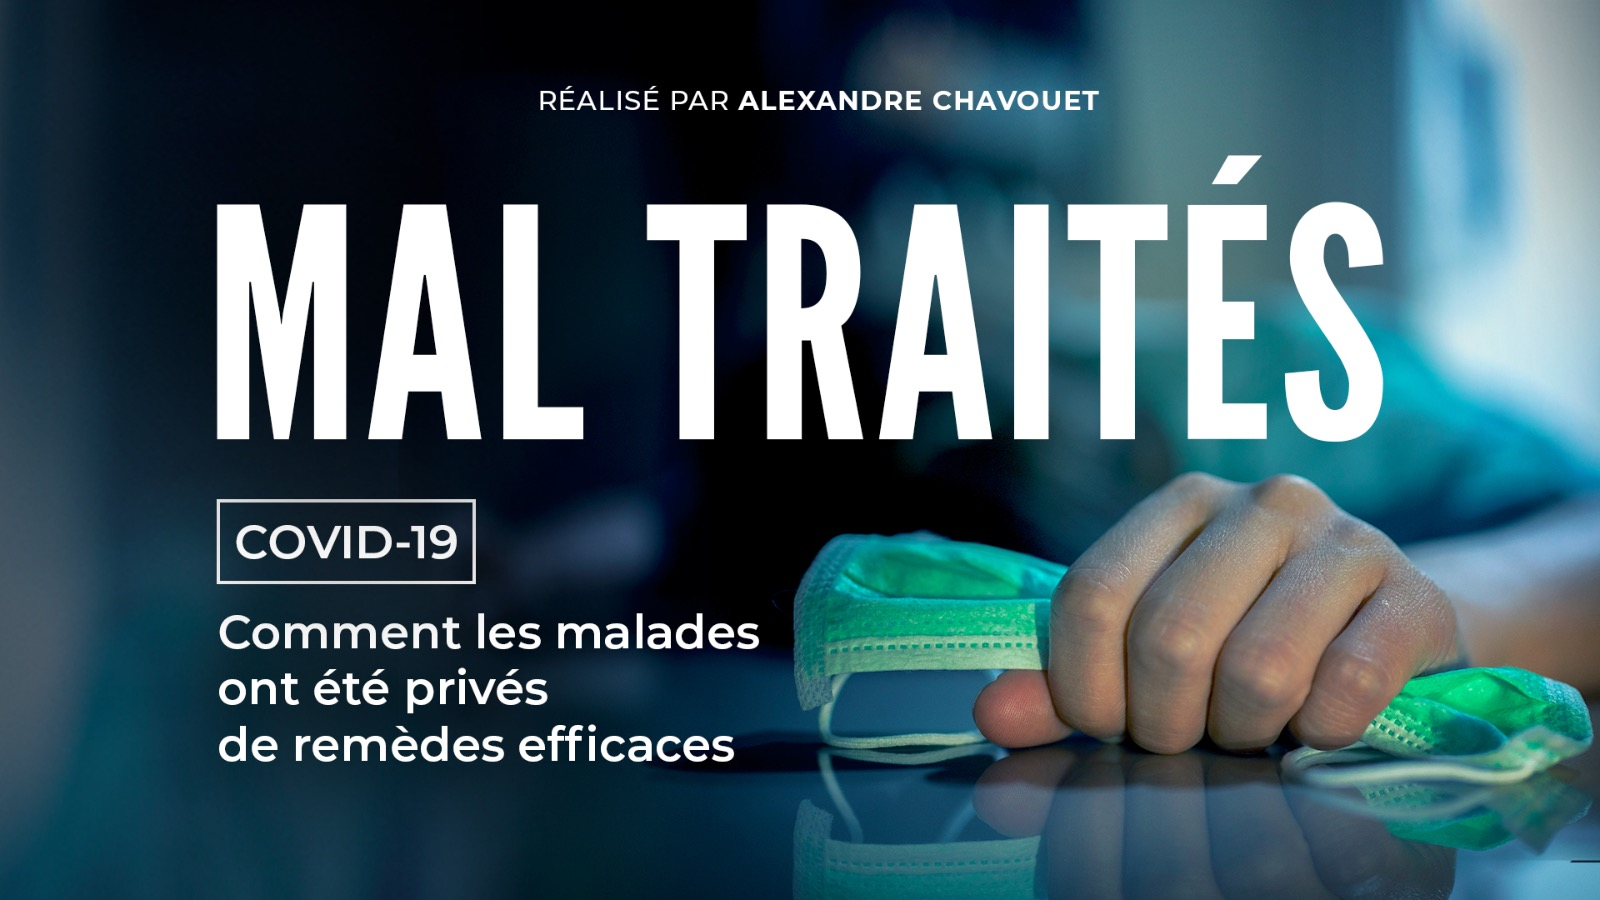 mal-traites-documentaire-alexandre-chavouet